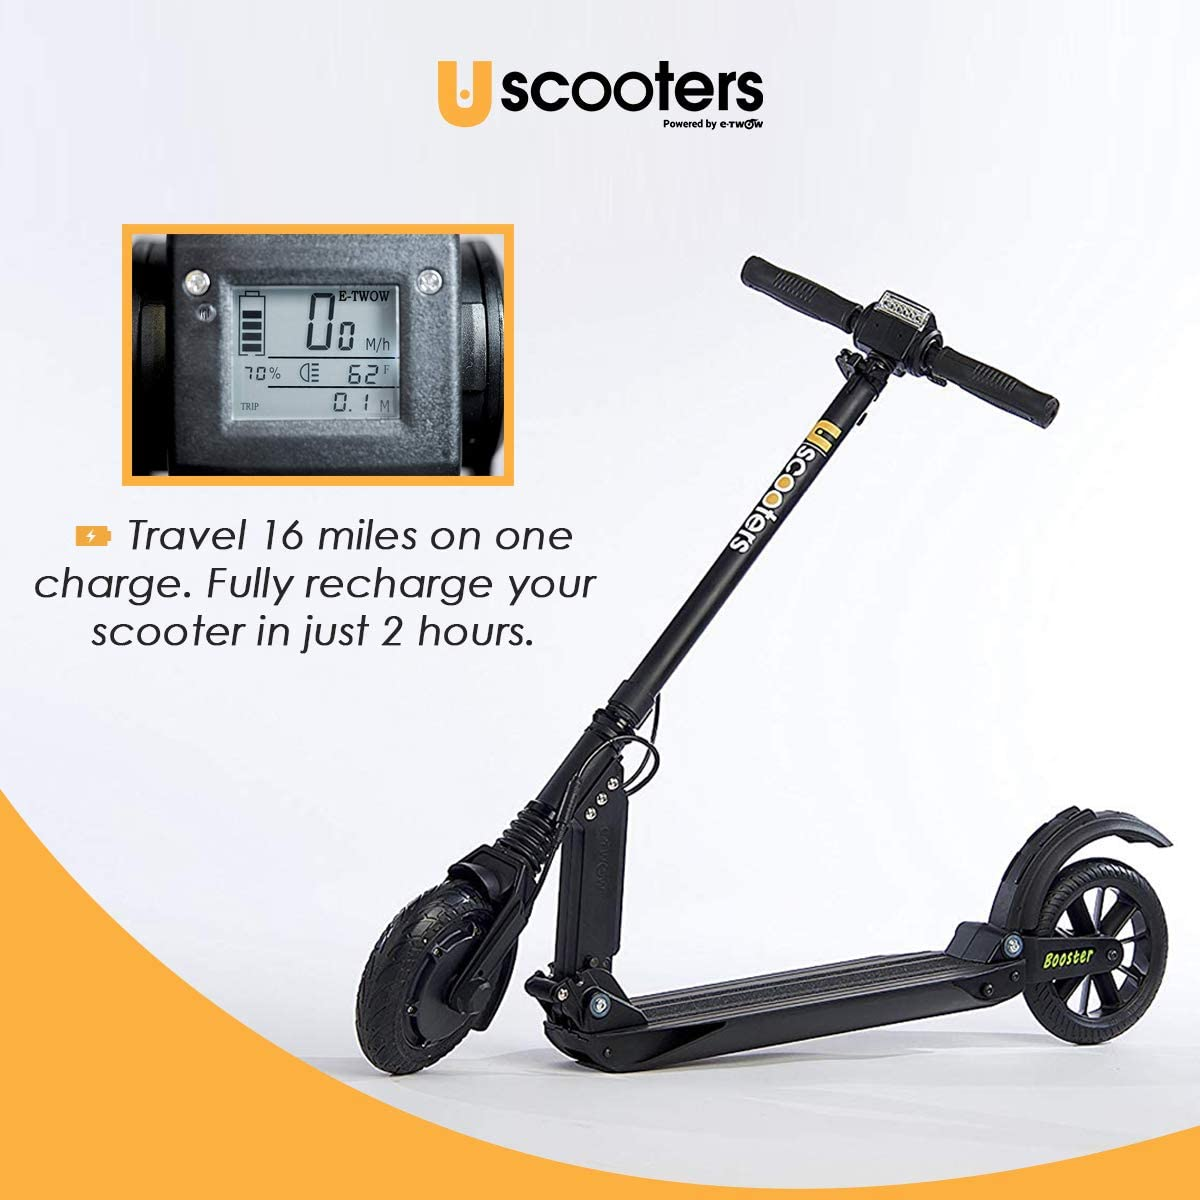 USCOOTERS ECO Model Electric Scooter 24V 6.5 Amp Black